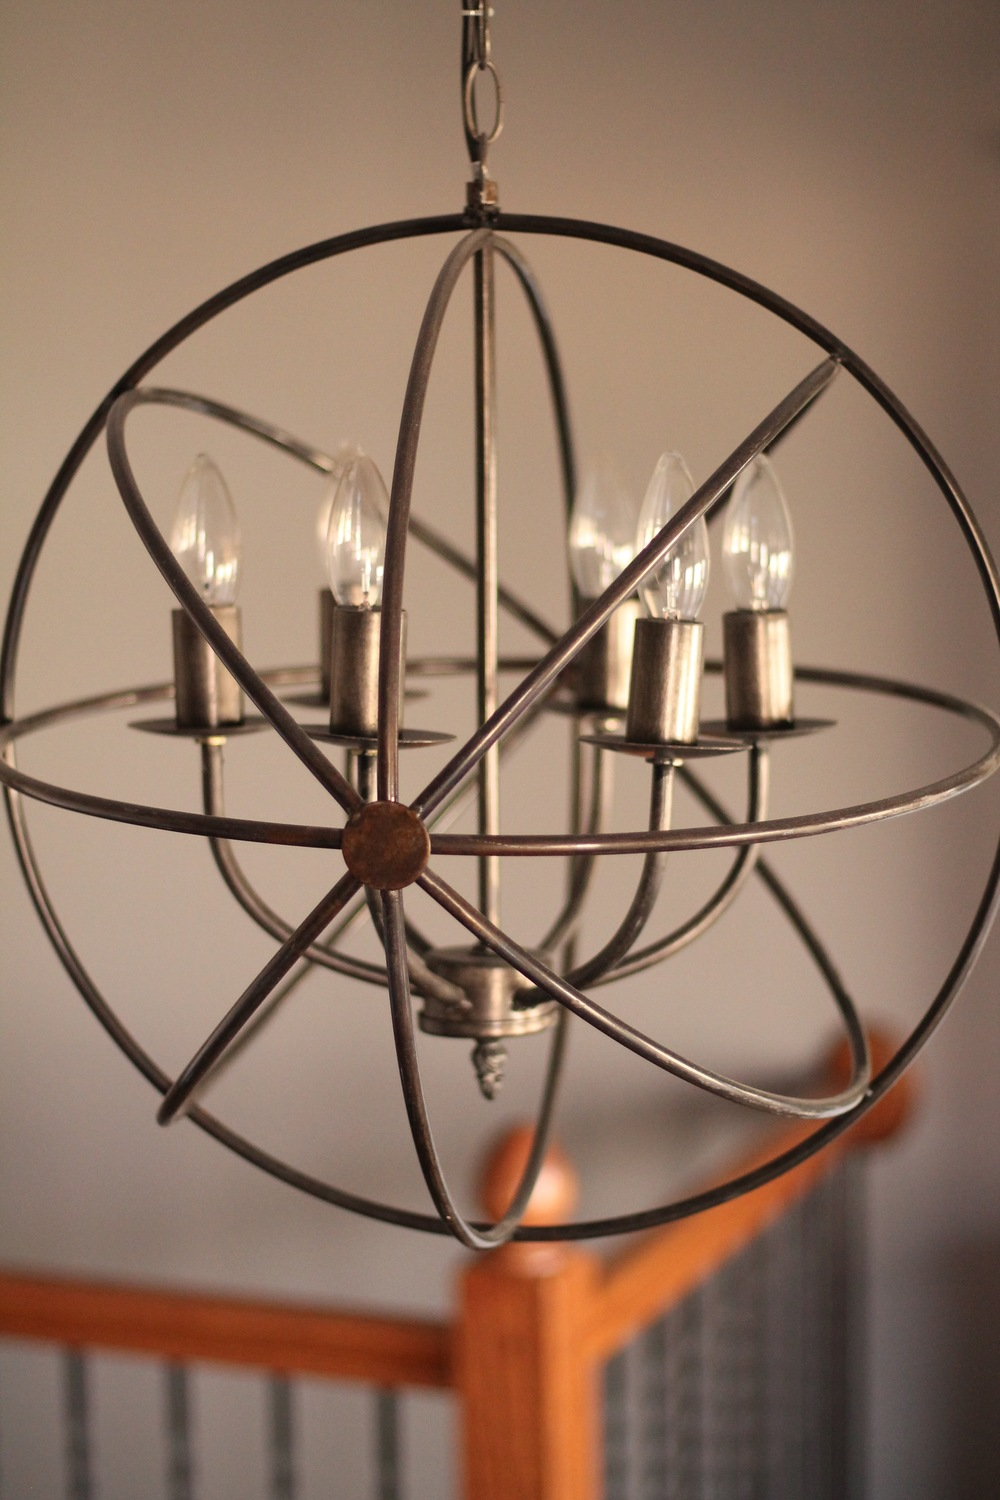 You can find globe chandeliers like this one and many others at RE:.    Photo from: Anna Huff